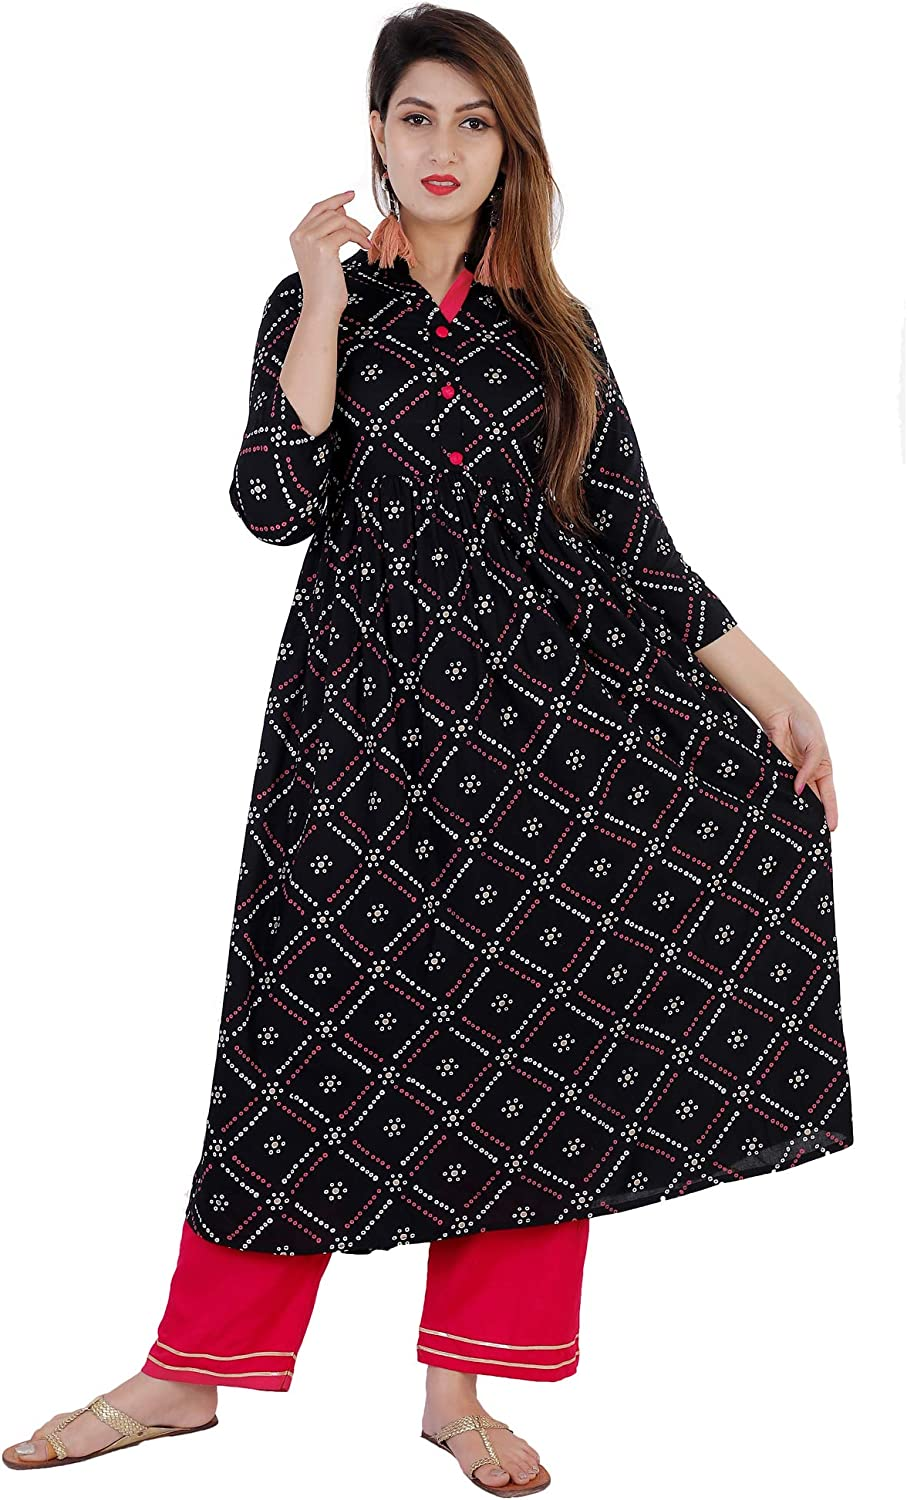 Cottonwalas Indian 返品送料無料 Tunic Tops Women's Checkered Wear 買収 Party Print